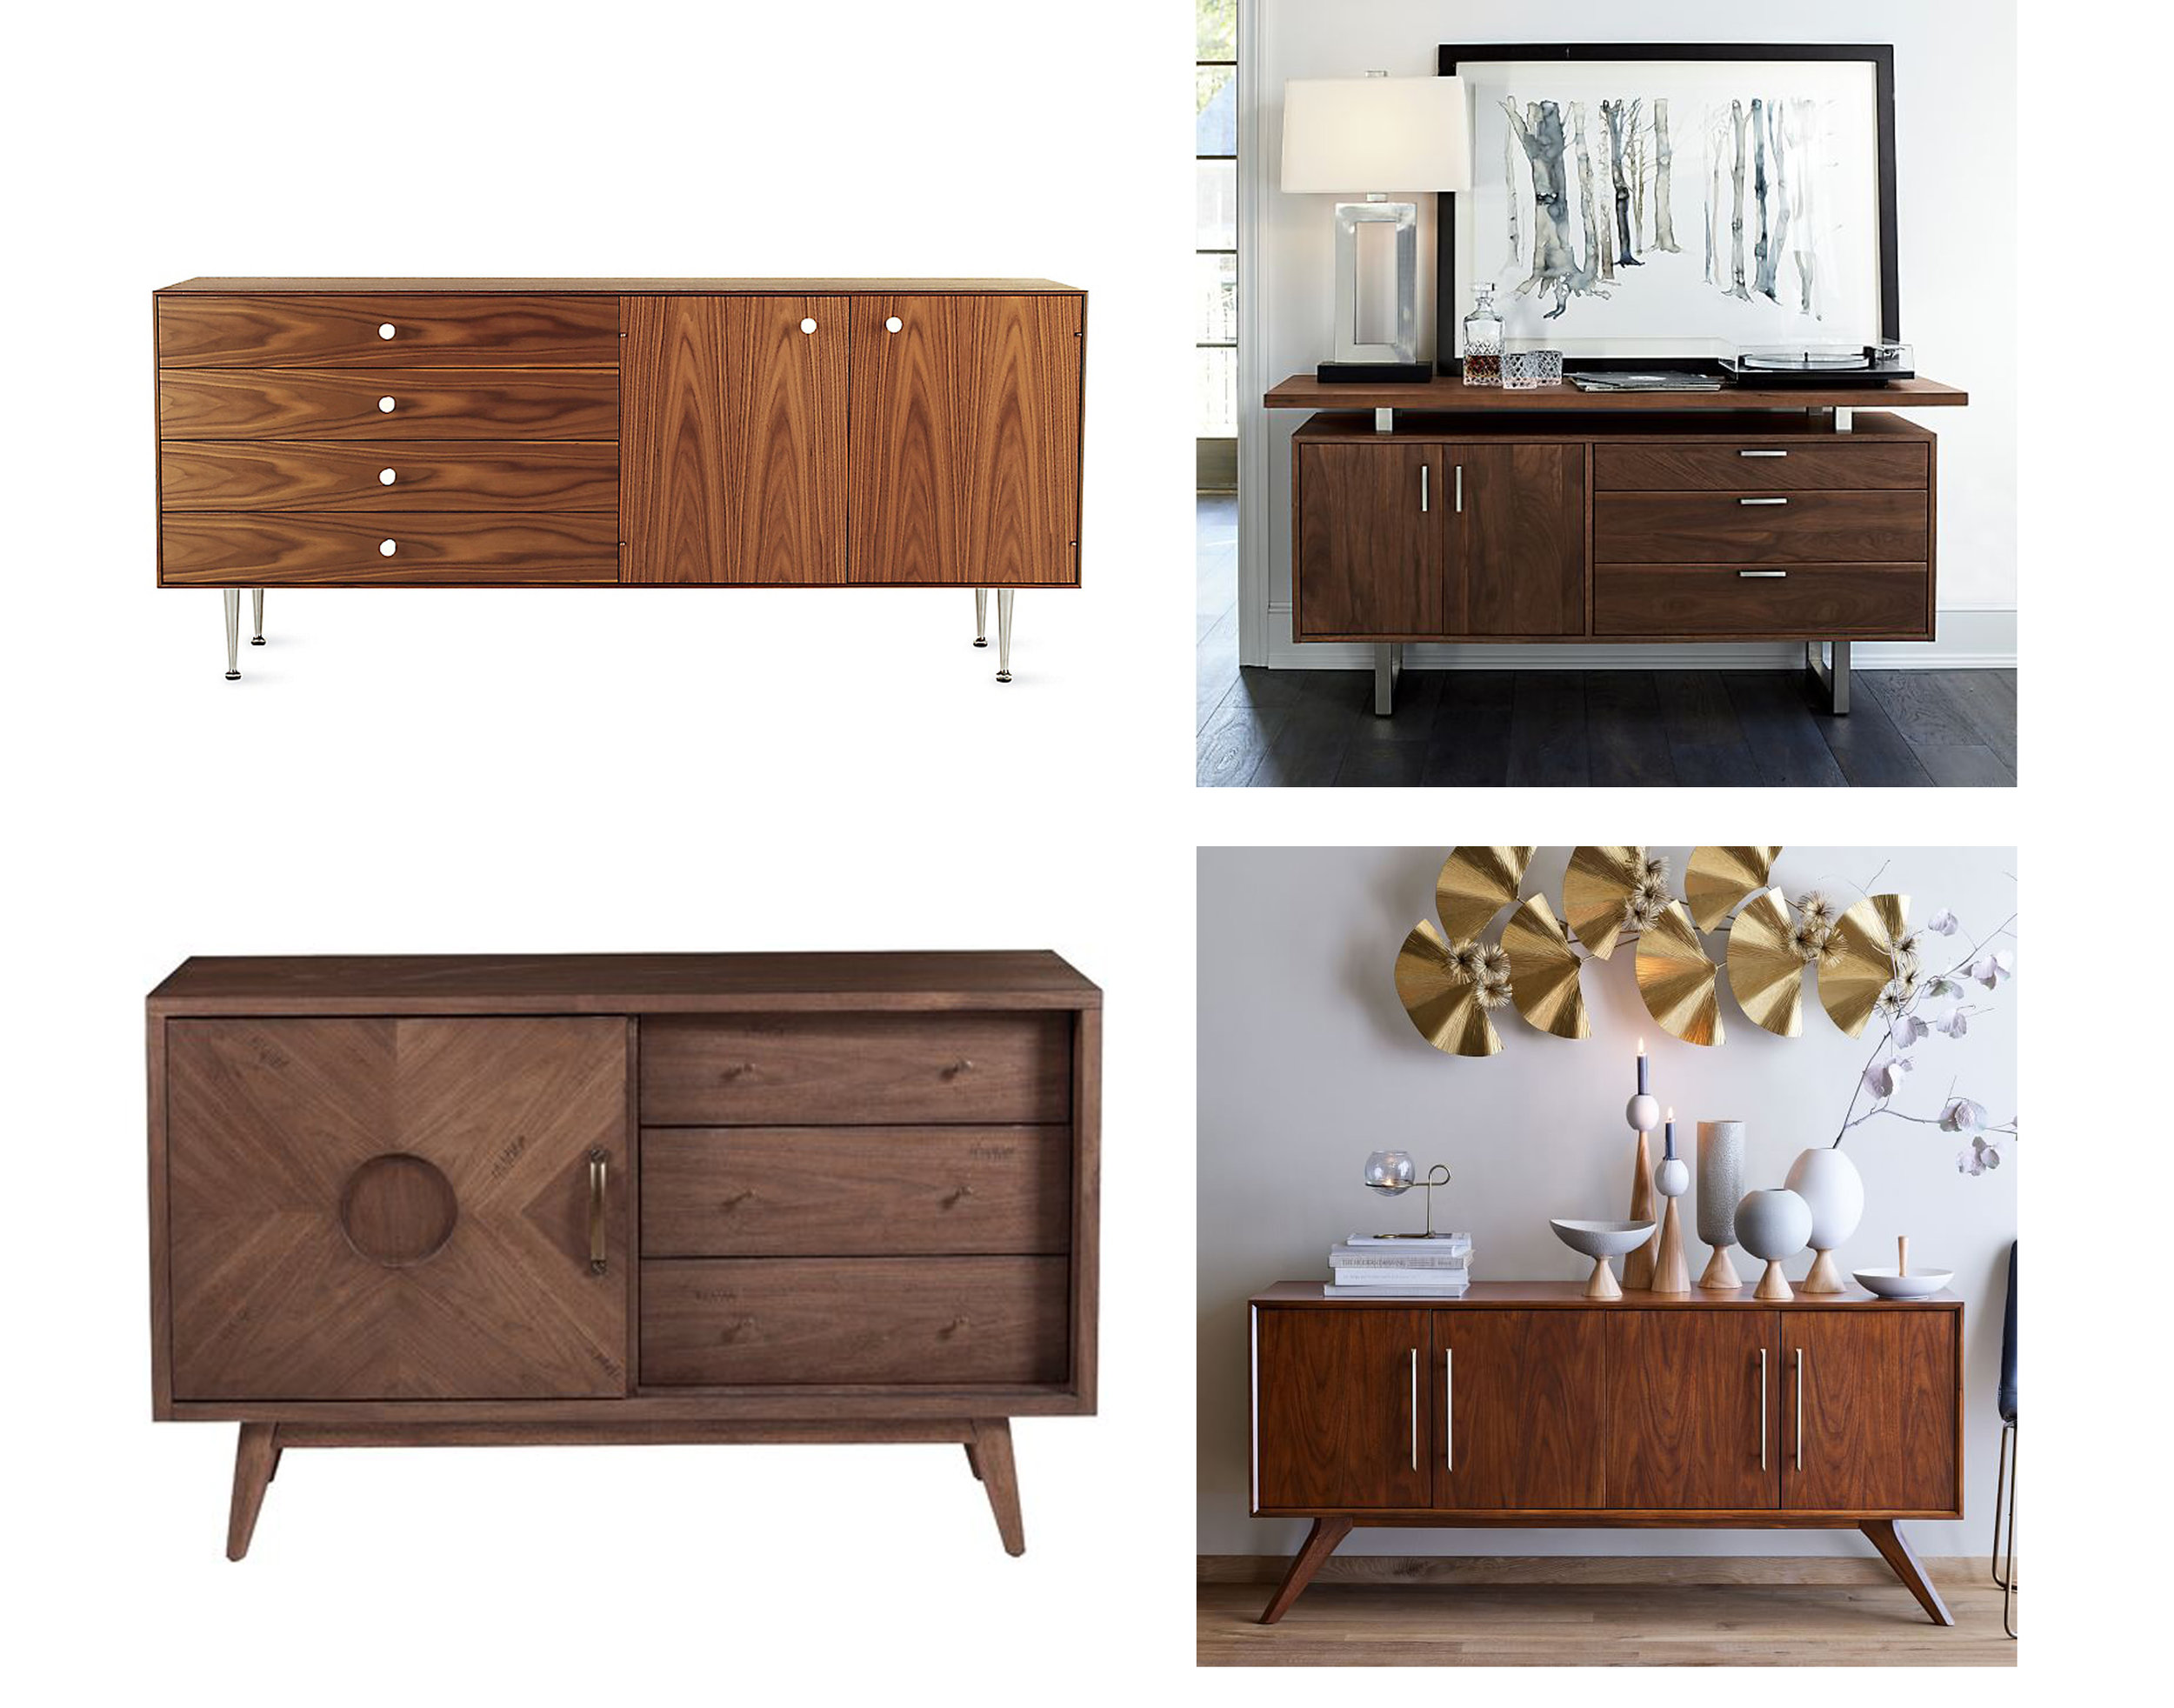 WAYFAIR  |  DWR  |  WEST ELM  |  CRATE AND BARREL